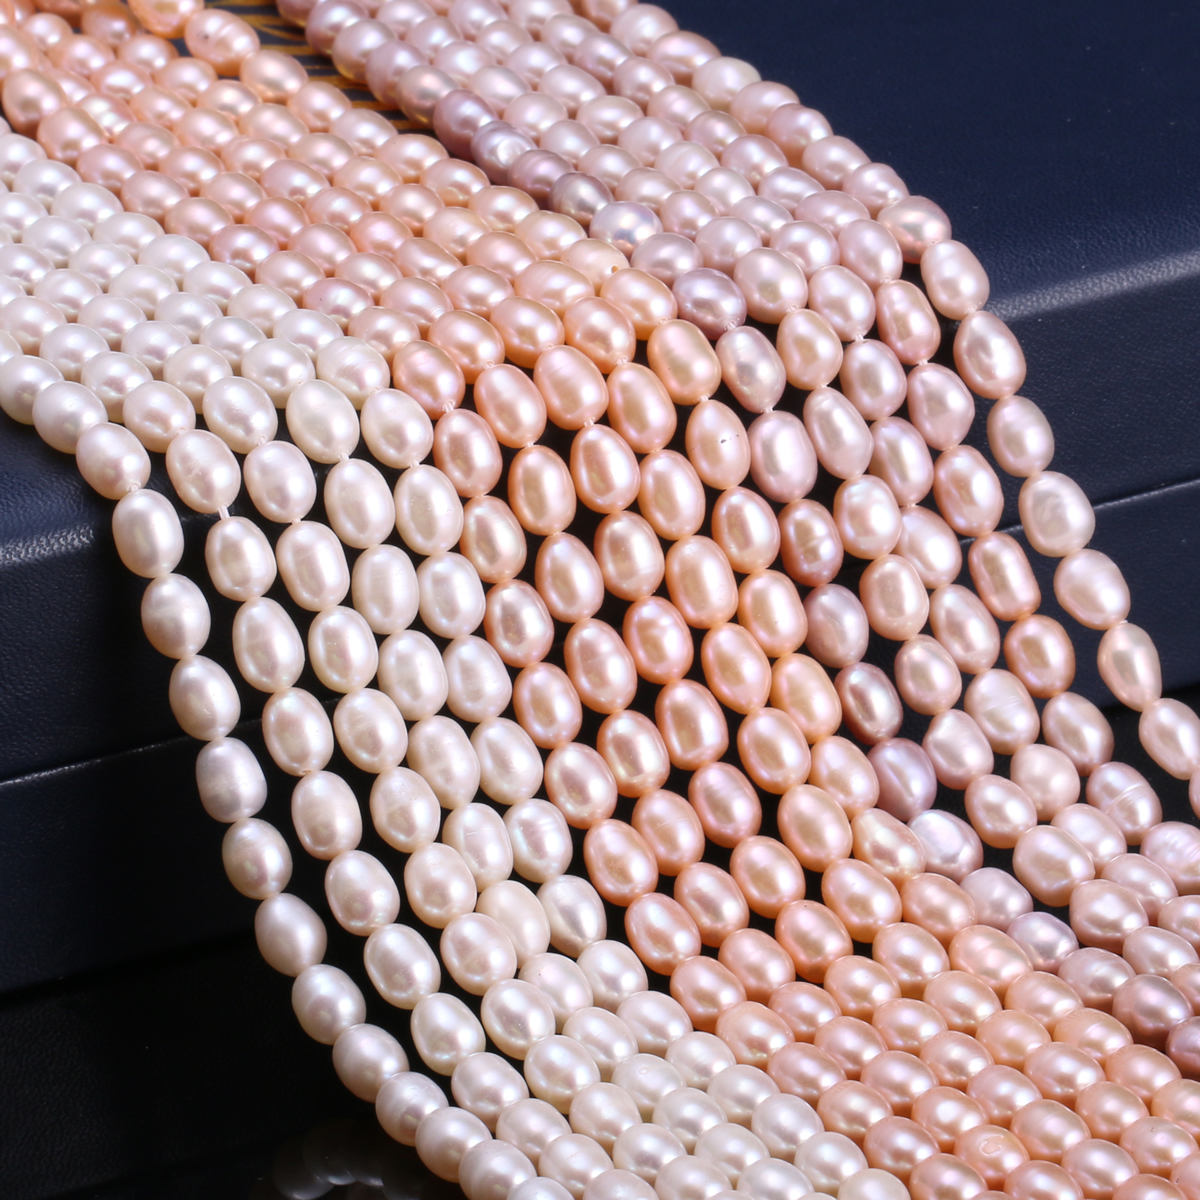 """DIY Jewelry White Natural Baroque Cultured Freshwater Pearl Beads 2-3mm 15.5/"""""""